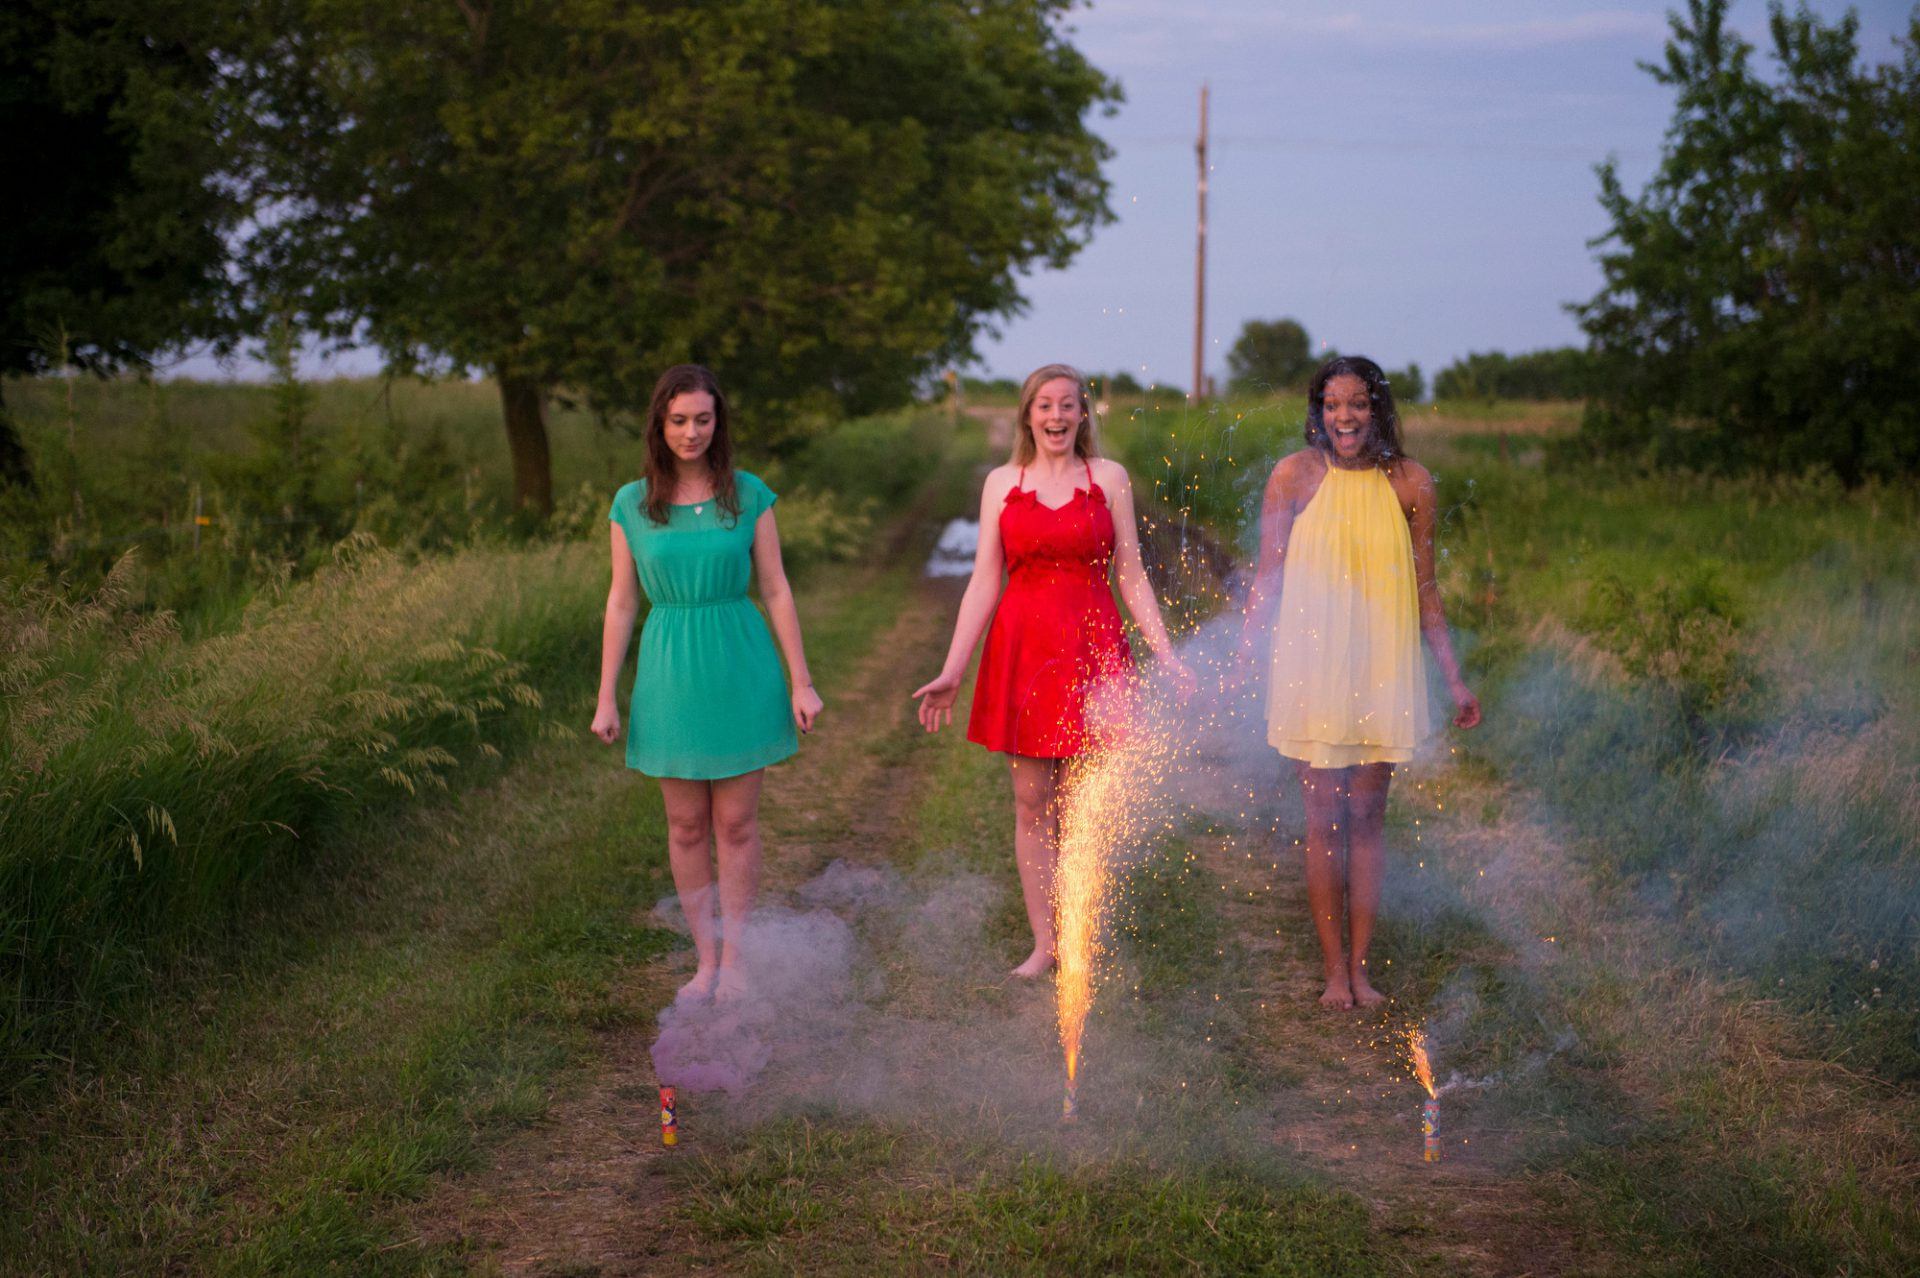 Photo: Three young women light fire crackers in Bennet, Nebraska.